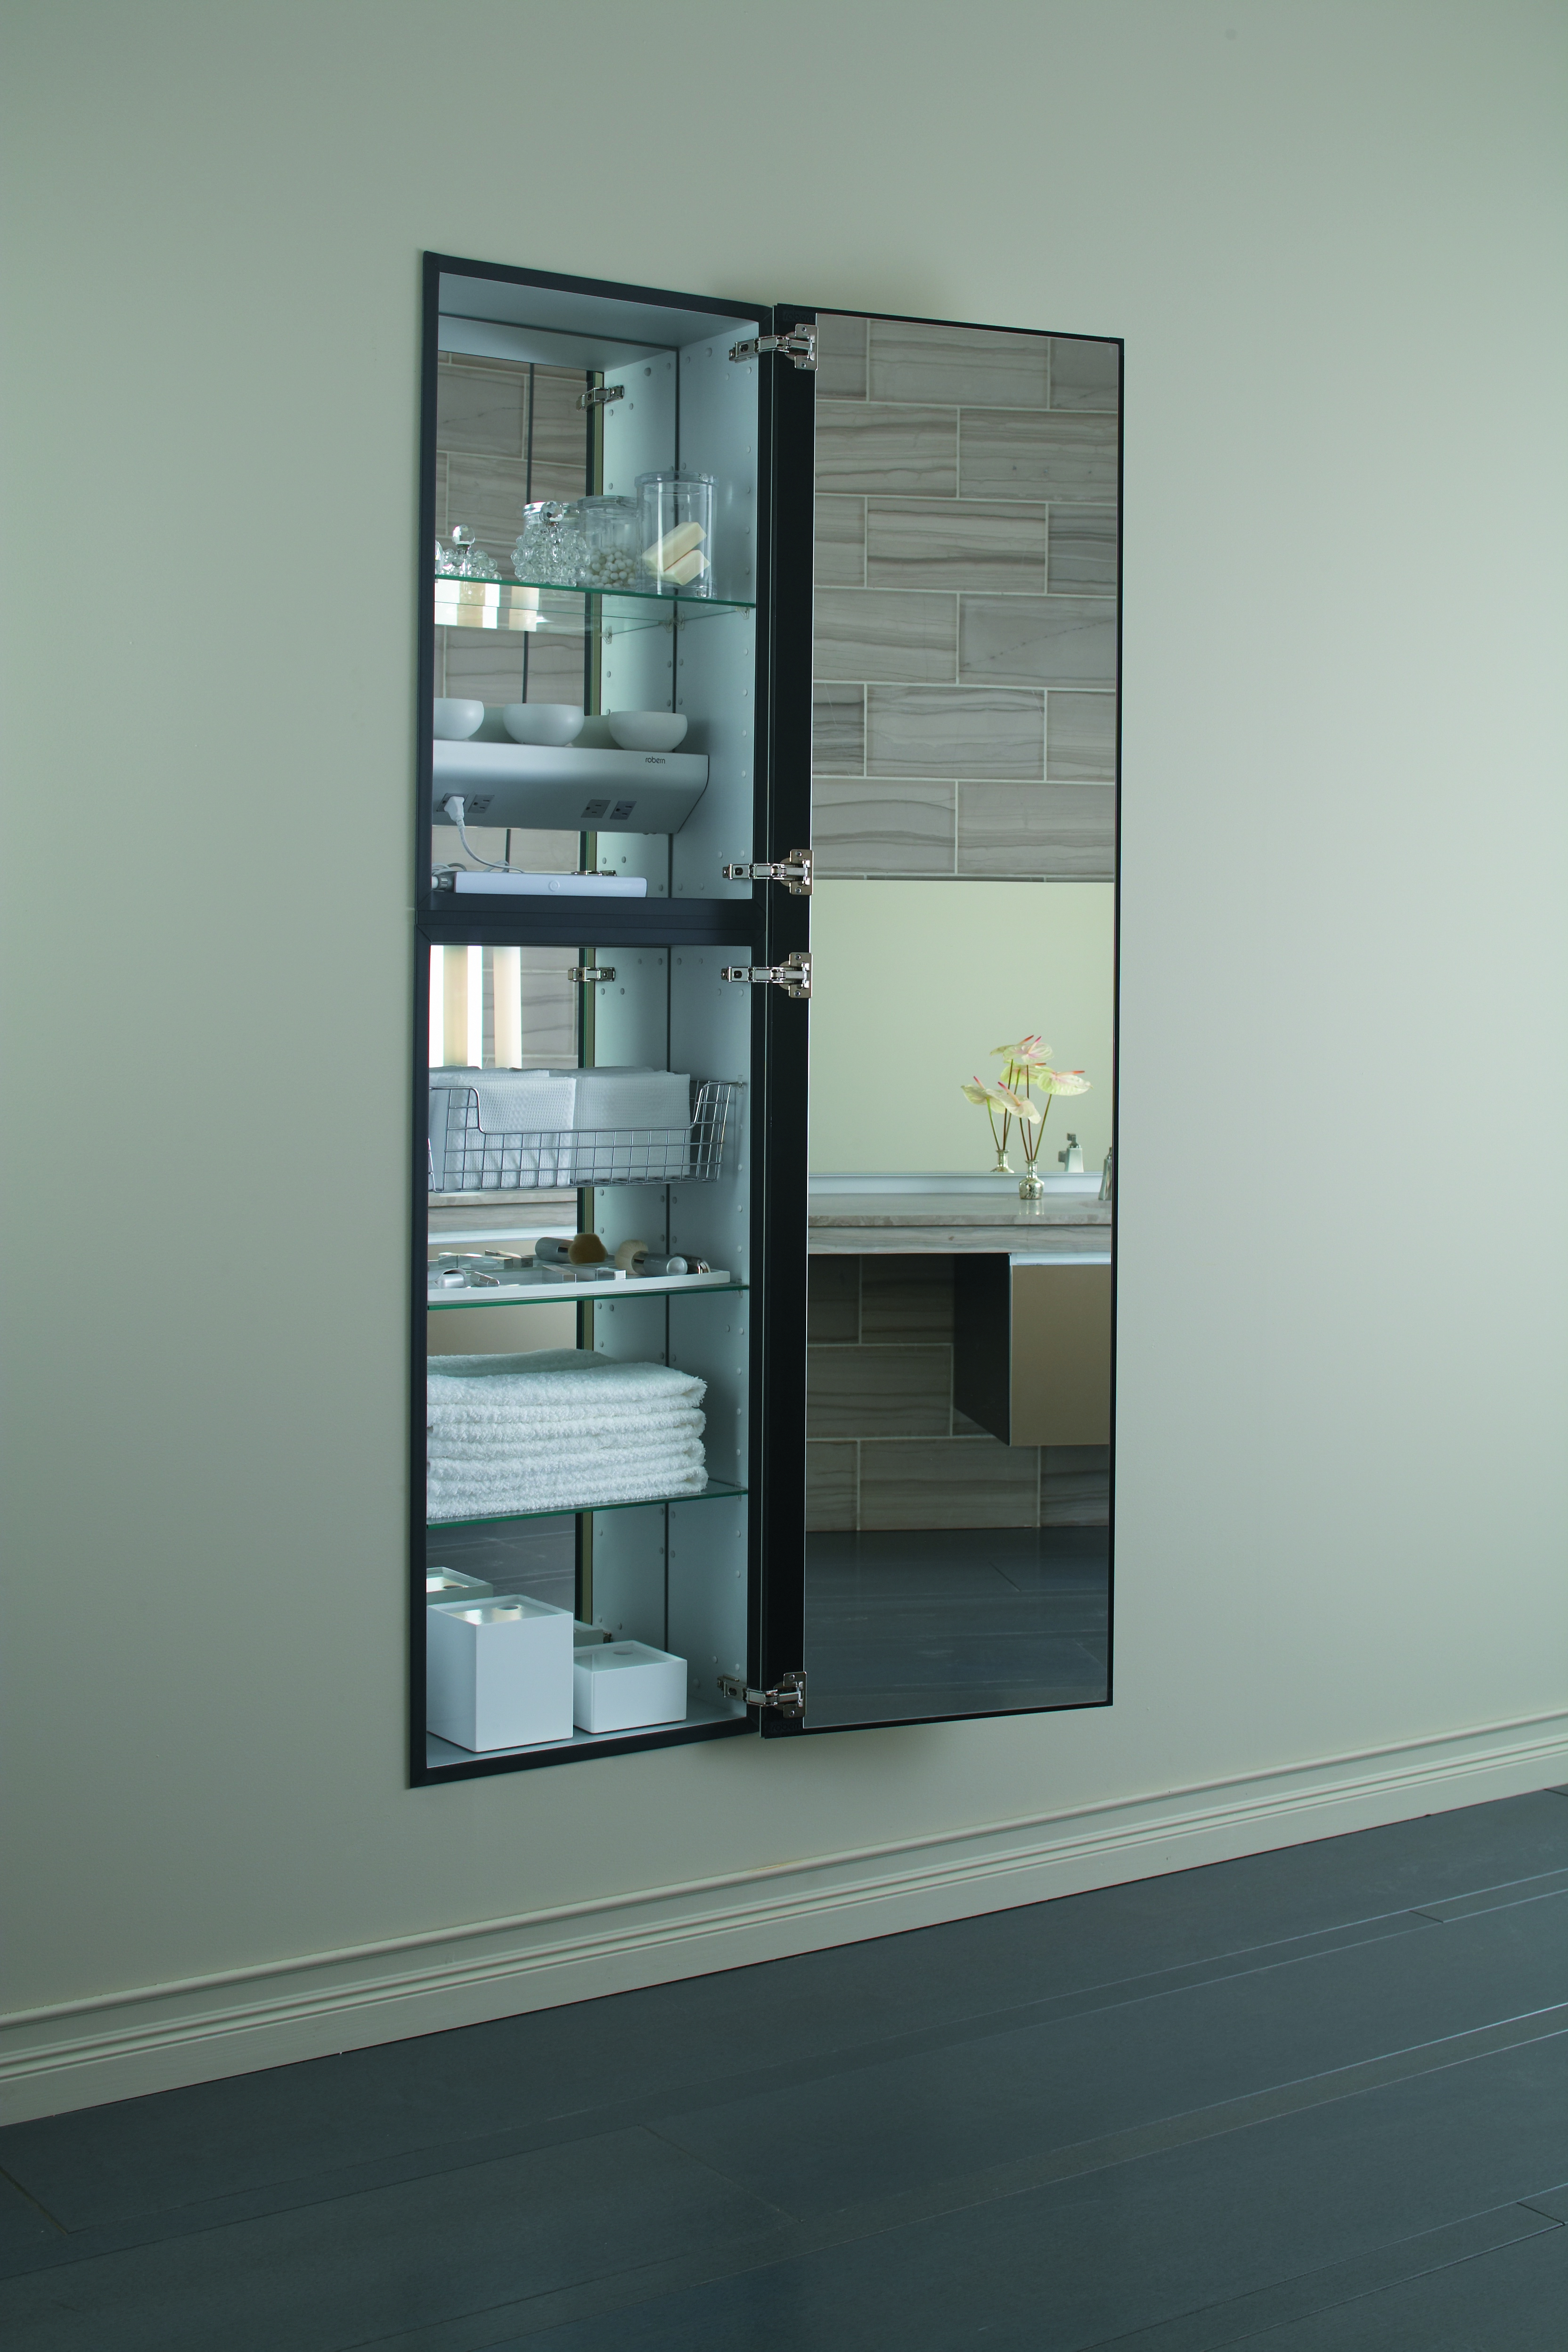 Fabulous Awesome Bathroom Recessed Medicine Cabinet Design With in sizing 3328 X 4992